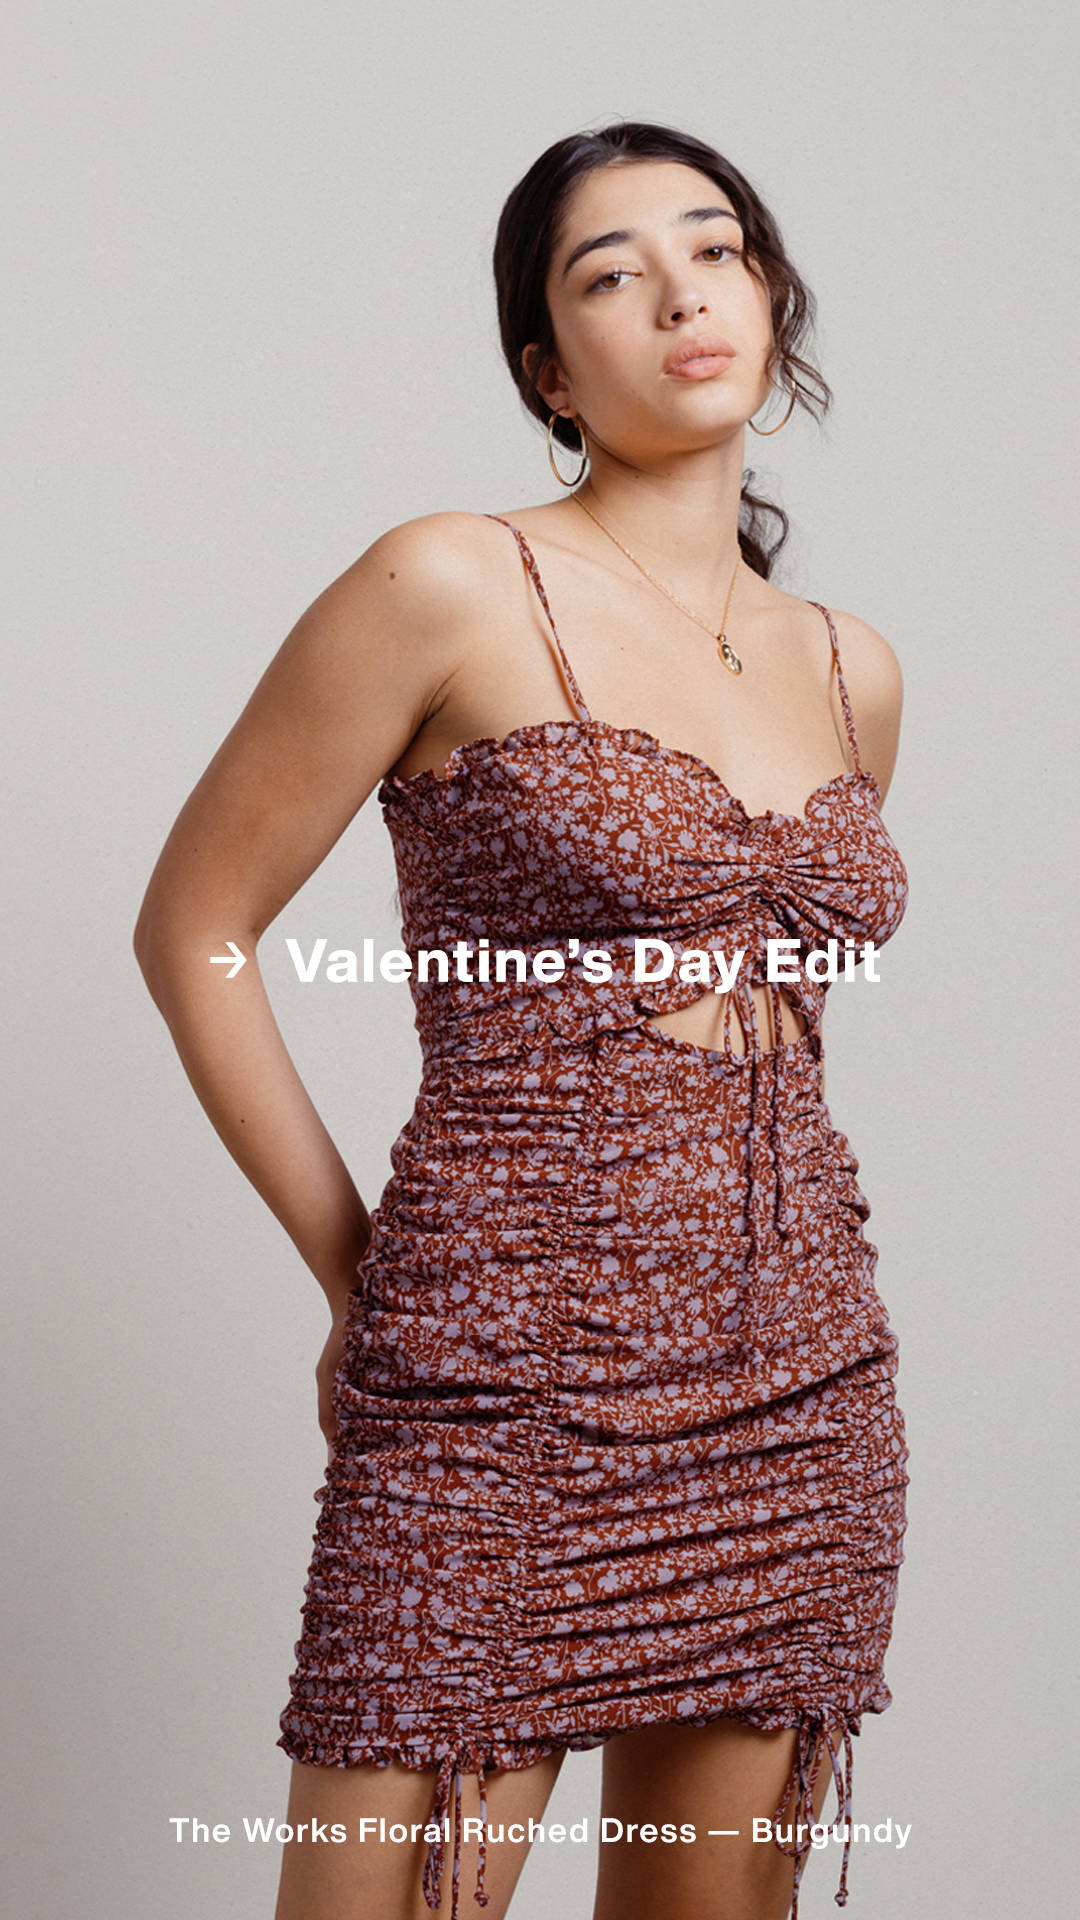 Valentines Day Edit - For your zoom dinner date.